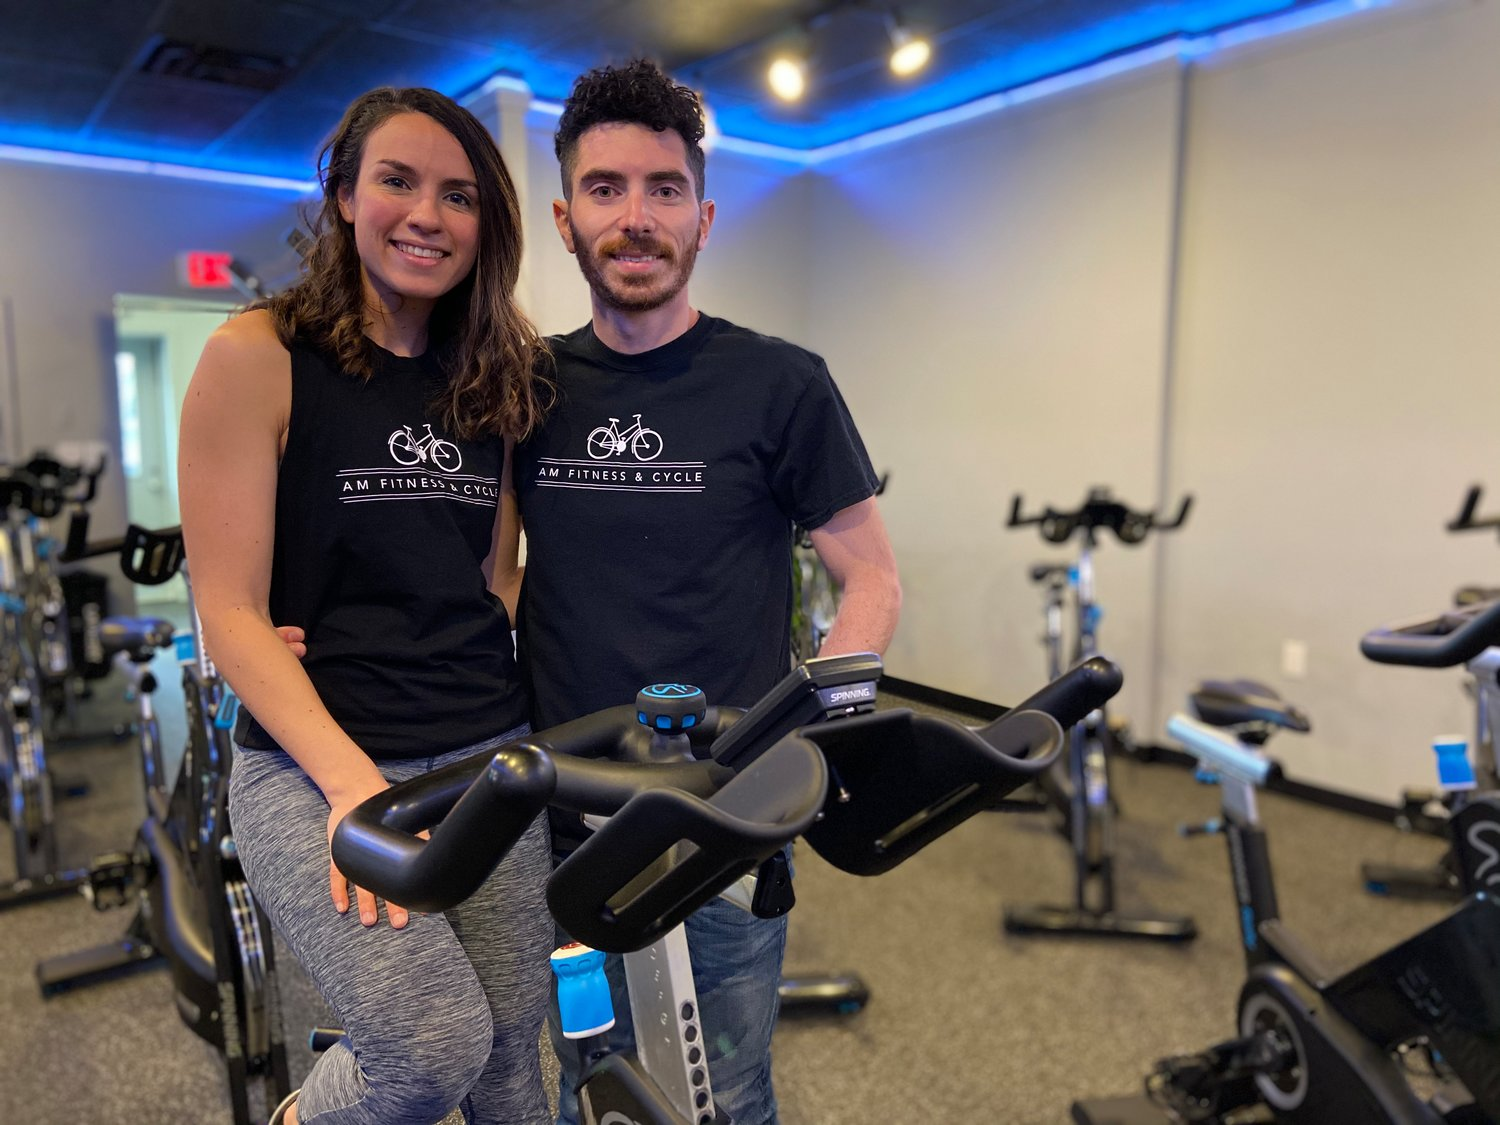 """Cycling is one of my favorite types of cardio,"" Amanda Mercurio said. She and her husband, Michael, recently opened AM Fitness & Cycle in Center Moriches."